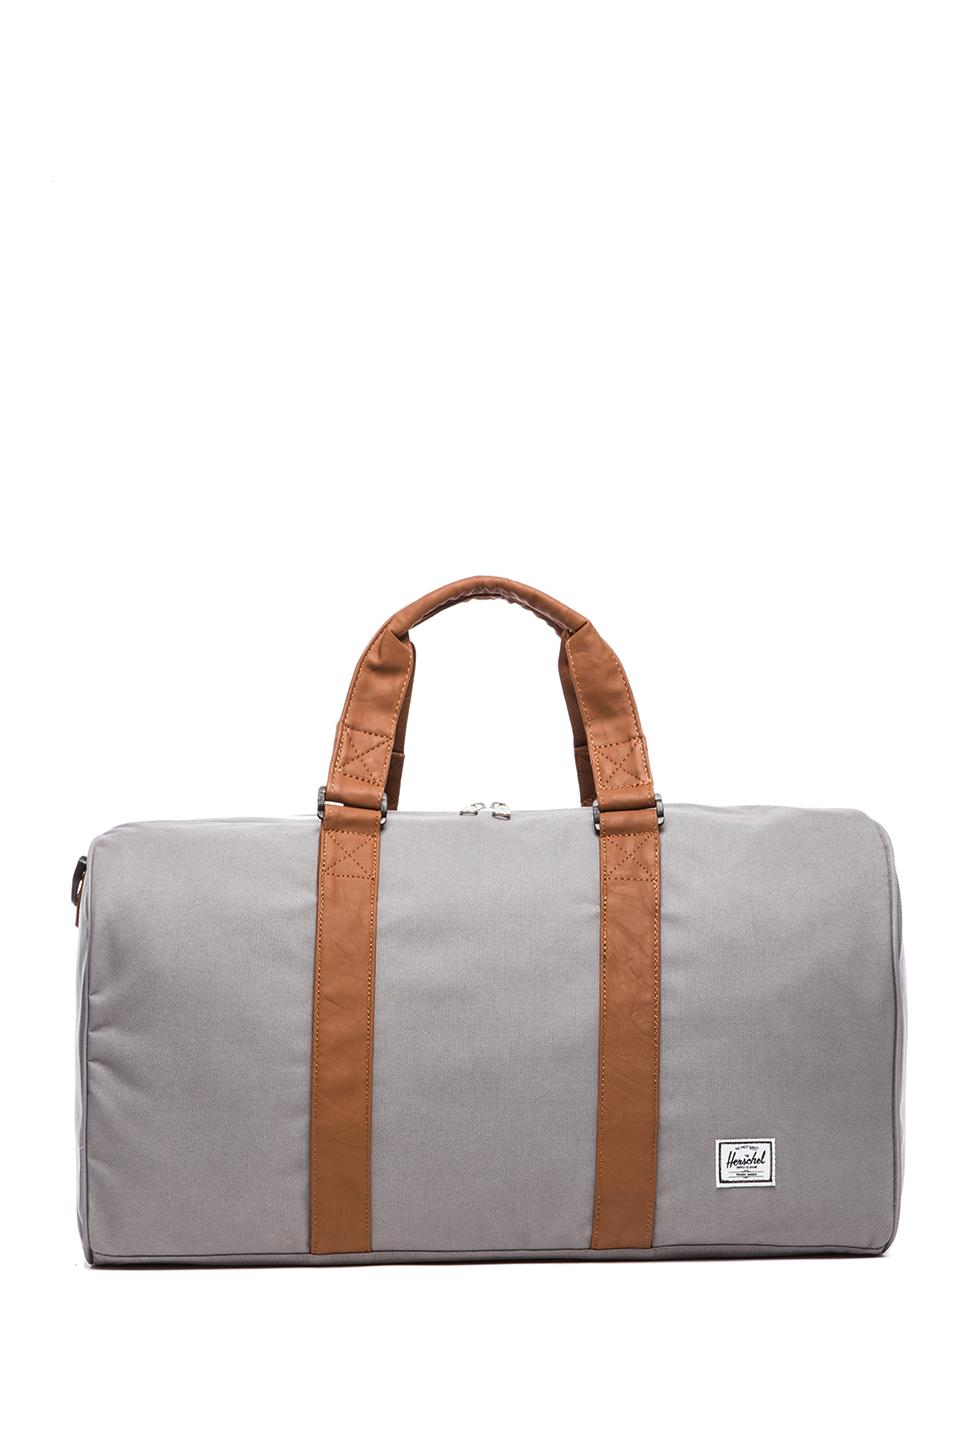 Herschel Supply Co. Sac de voyage Ravine en Gris/Fauve